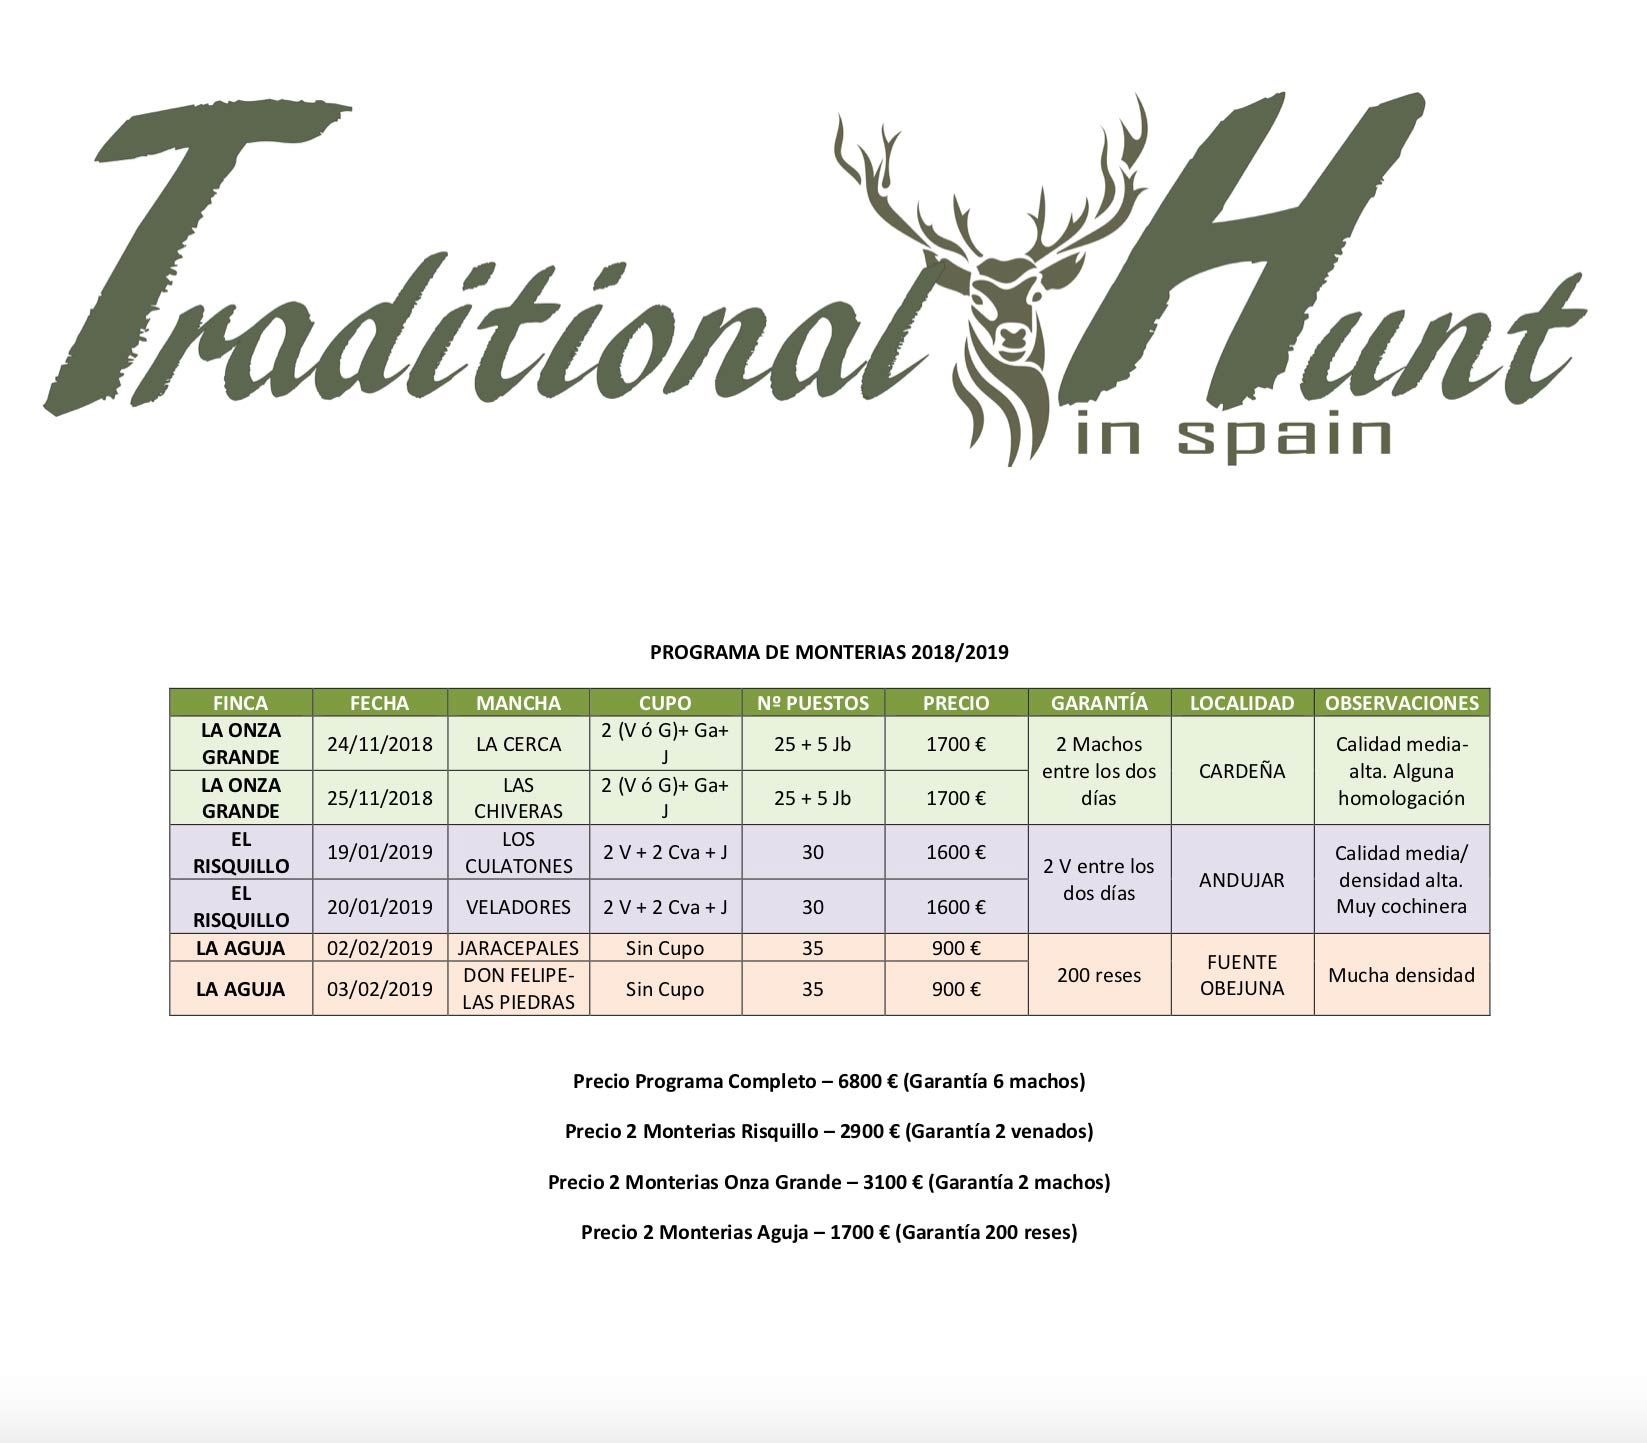 ProgramaTraditionalHunt